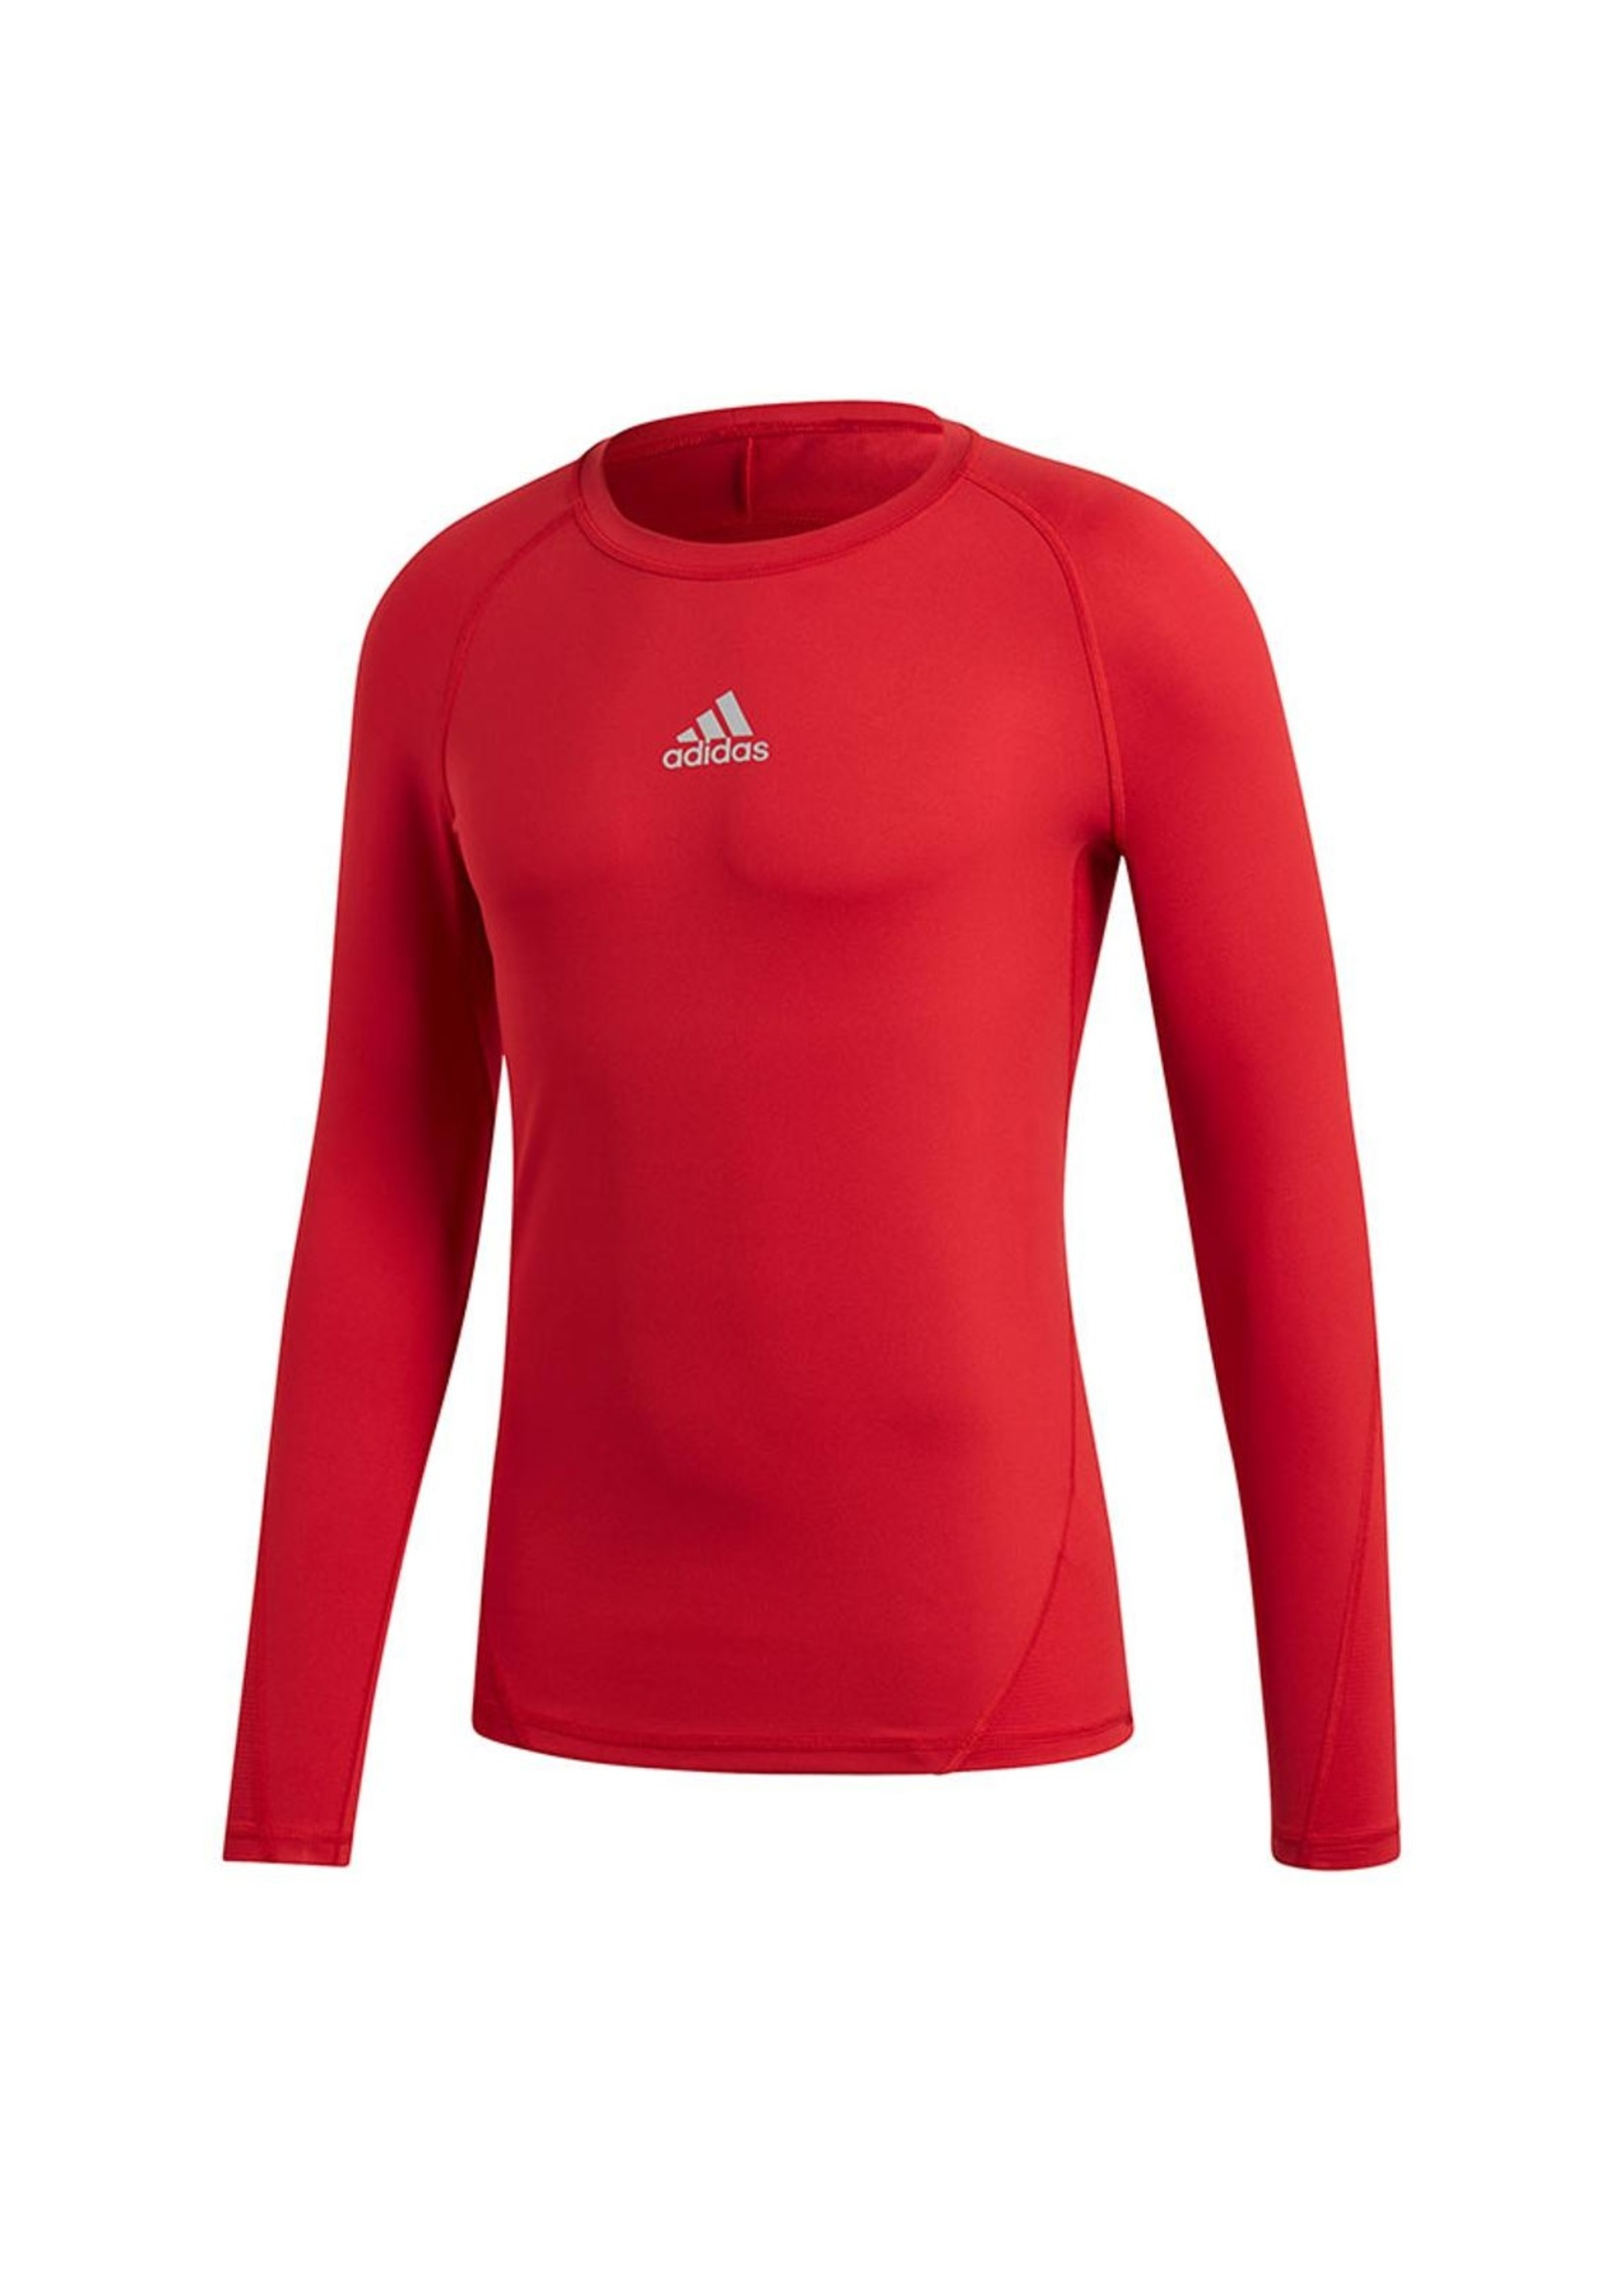 Adidas Compression Red Long Sleeve Youth